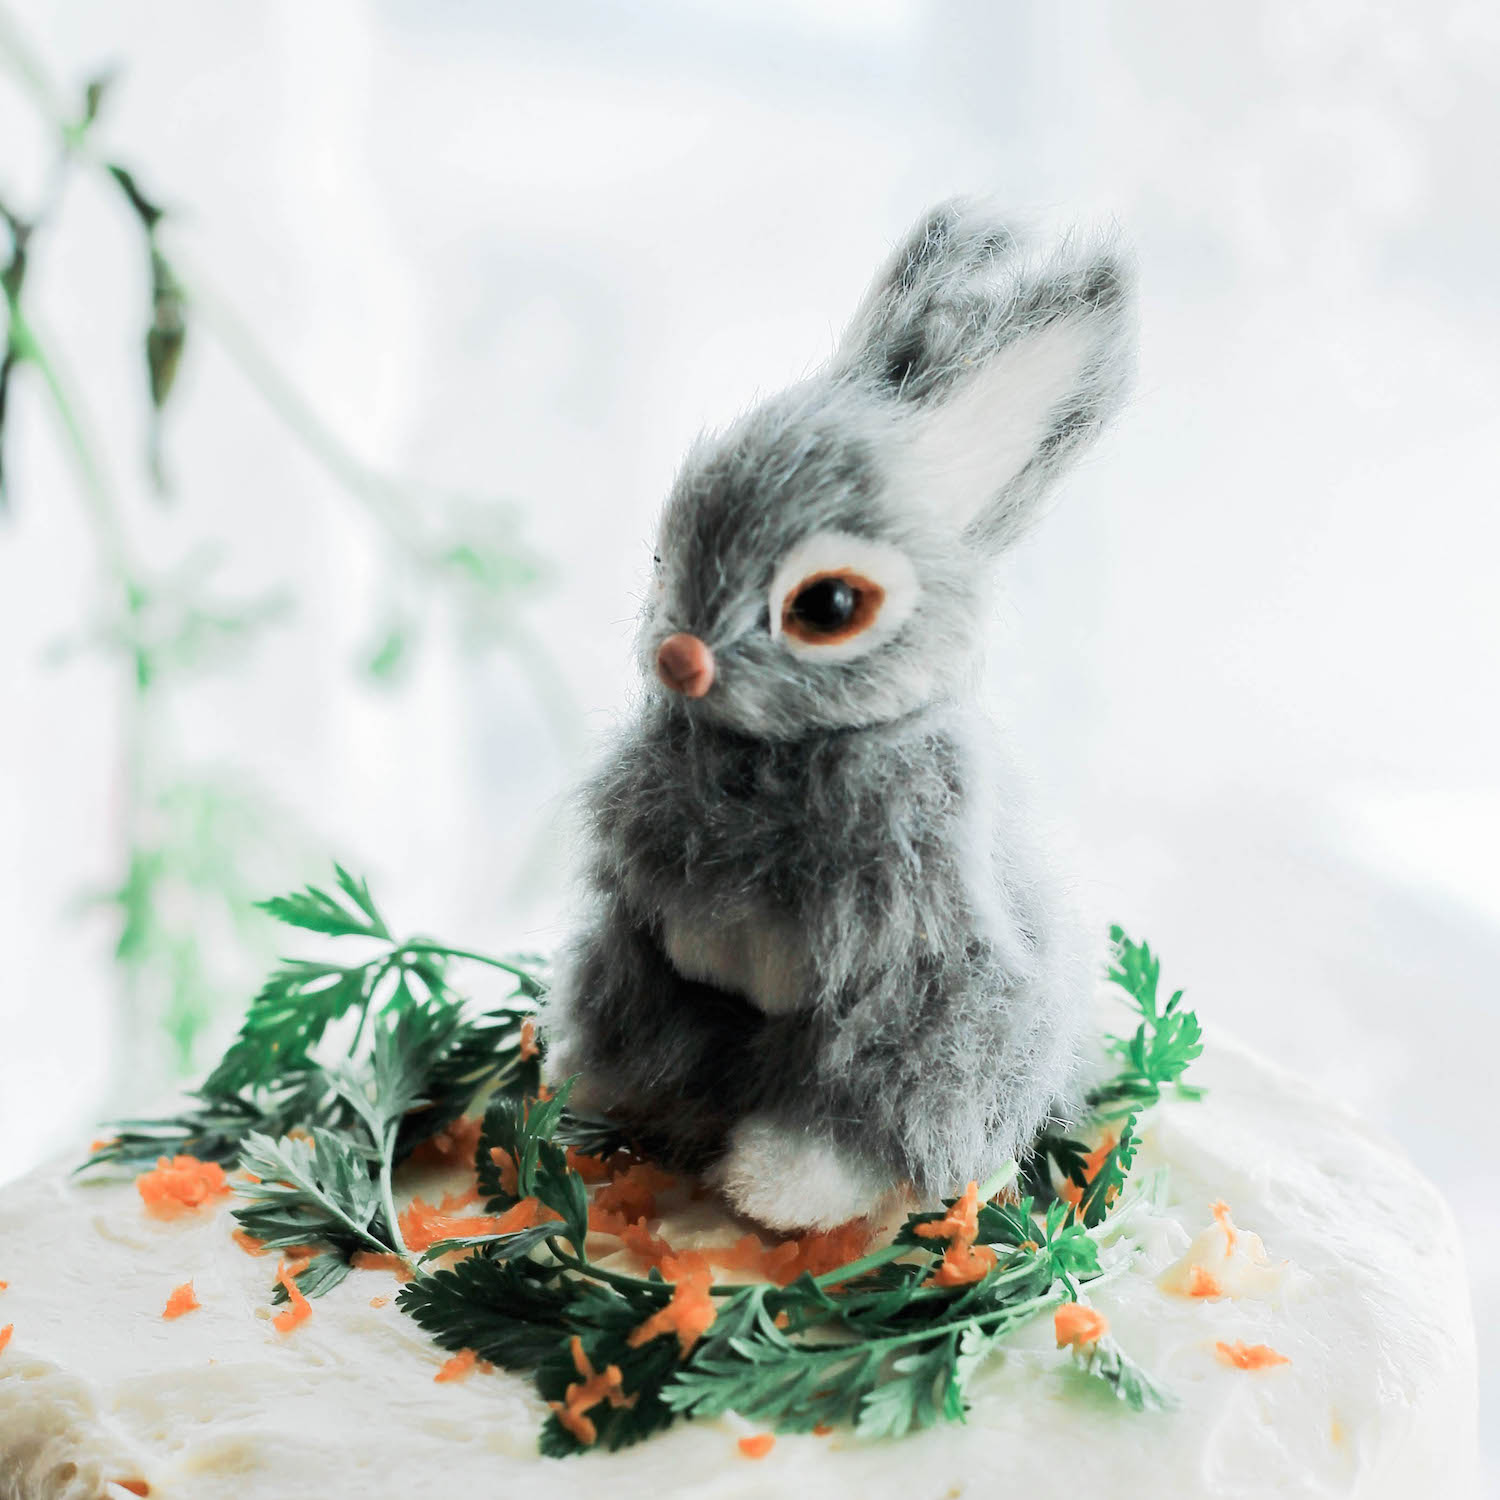 The sweetest bunny cake topper - surrounded by grated carrots and parsley sprigs / as seen in the Bunny Spring Birthday Party Inspiration Post on www.GiggleHearts.com